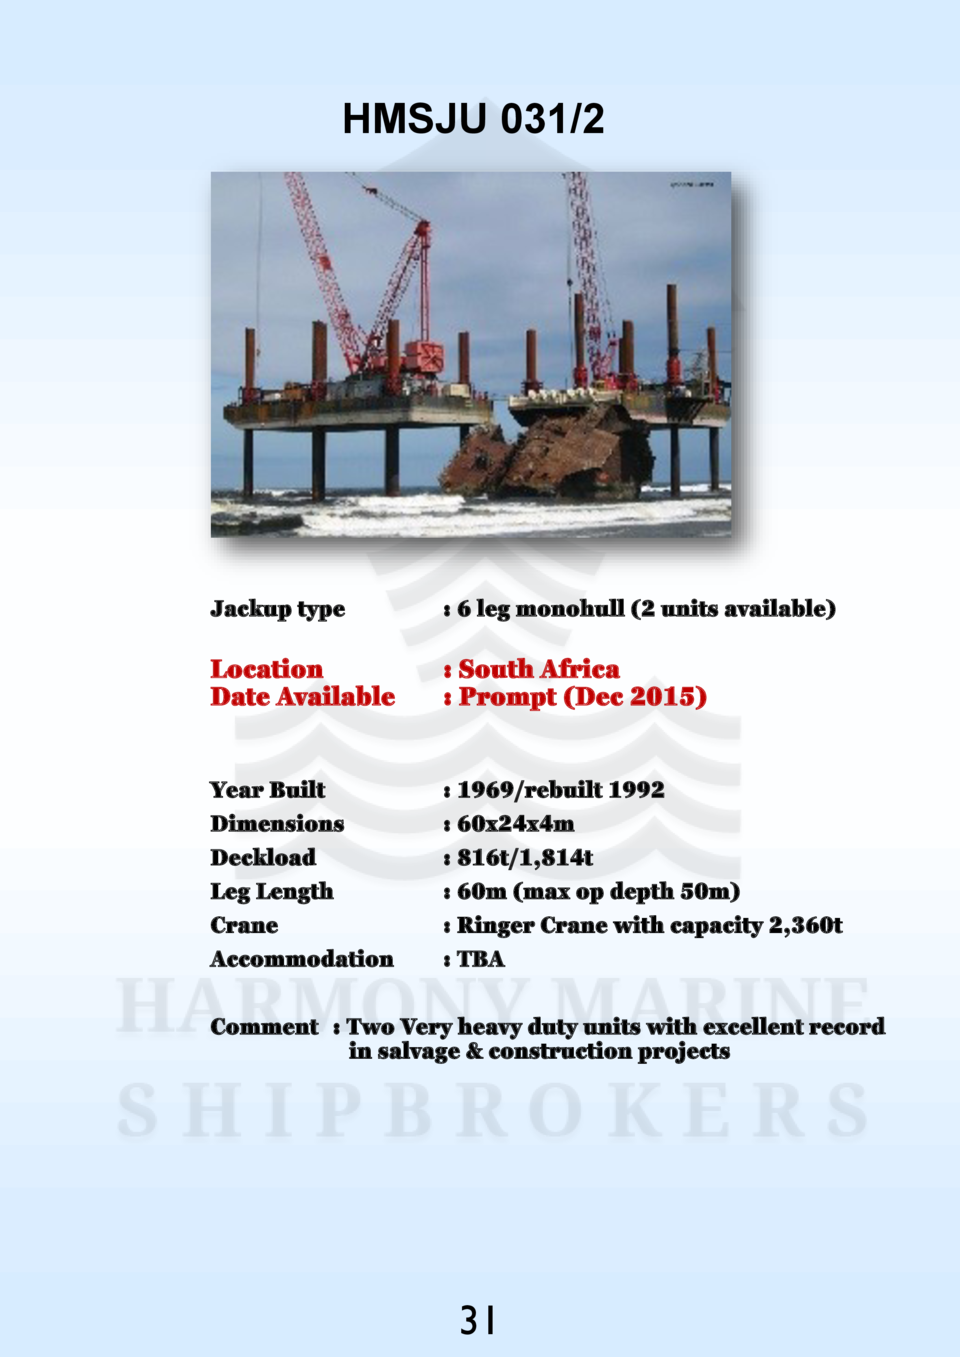 HMSJU 031 2  Jackup type    6 leg monohull  2 units available   Location Date Available    South Africa   Prompt  Dec 2015...